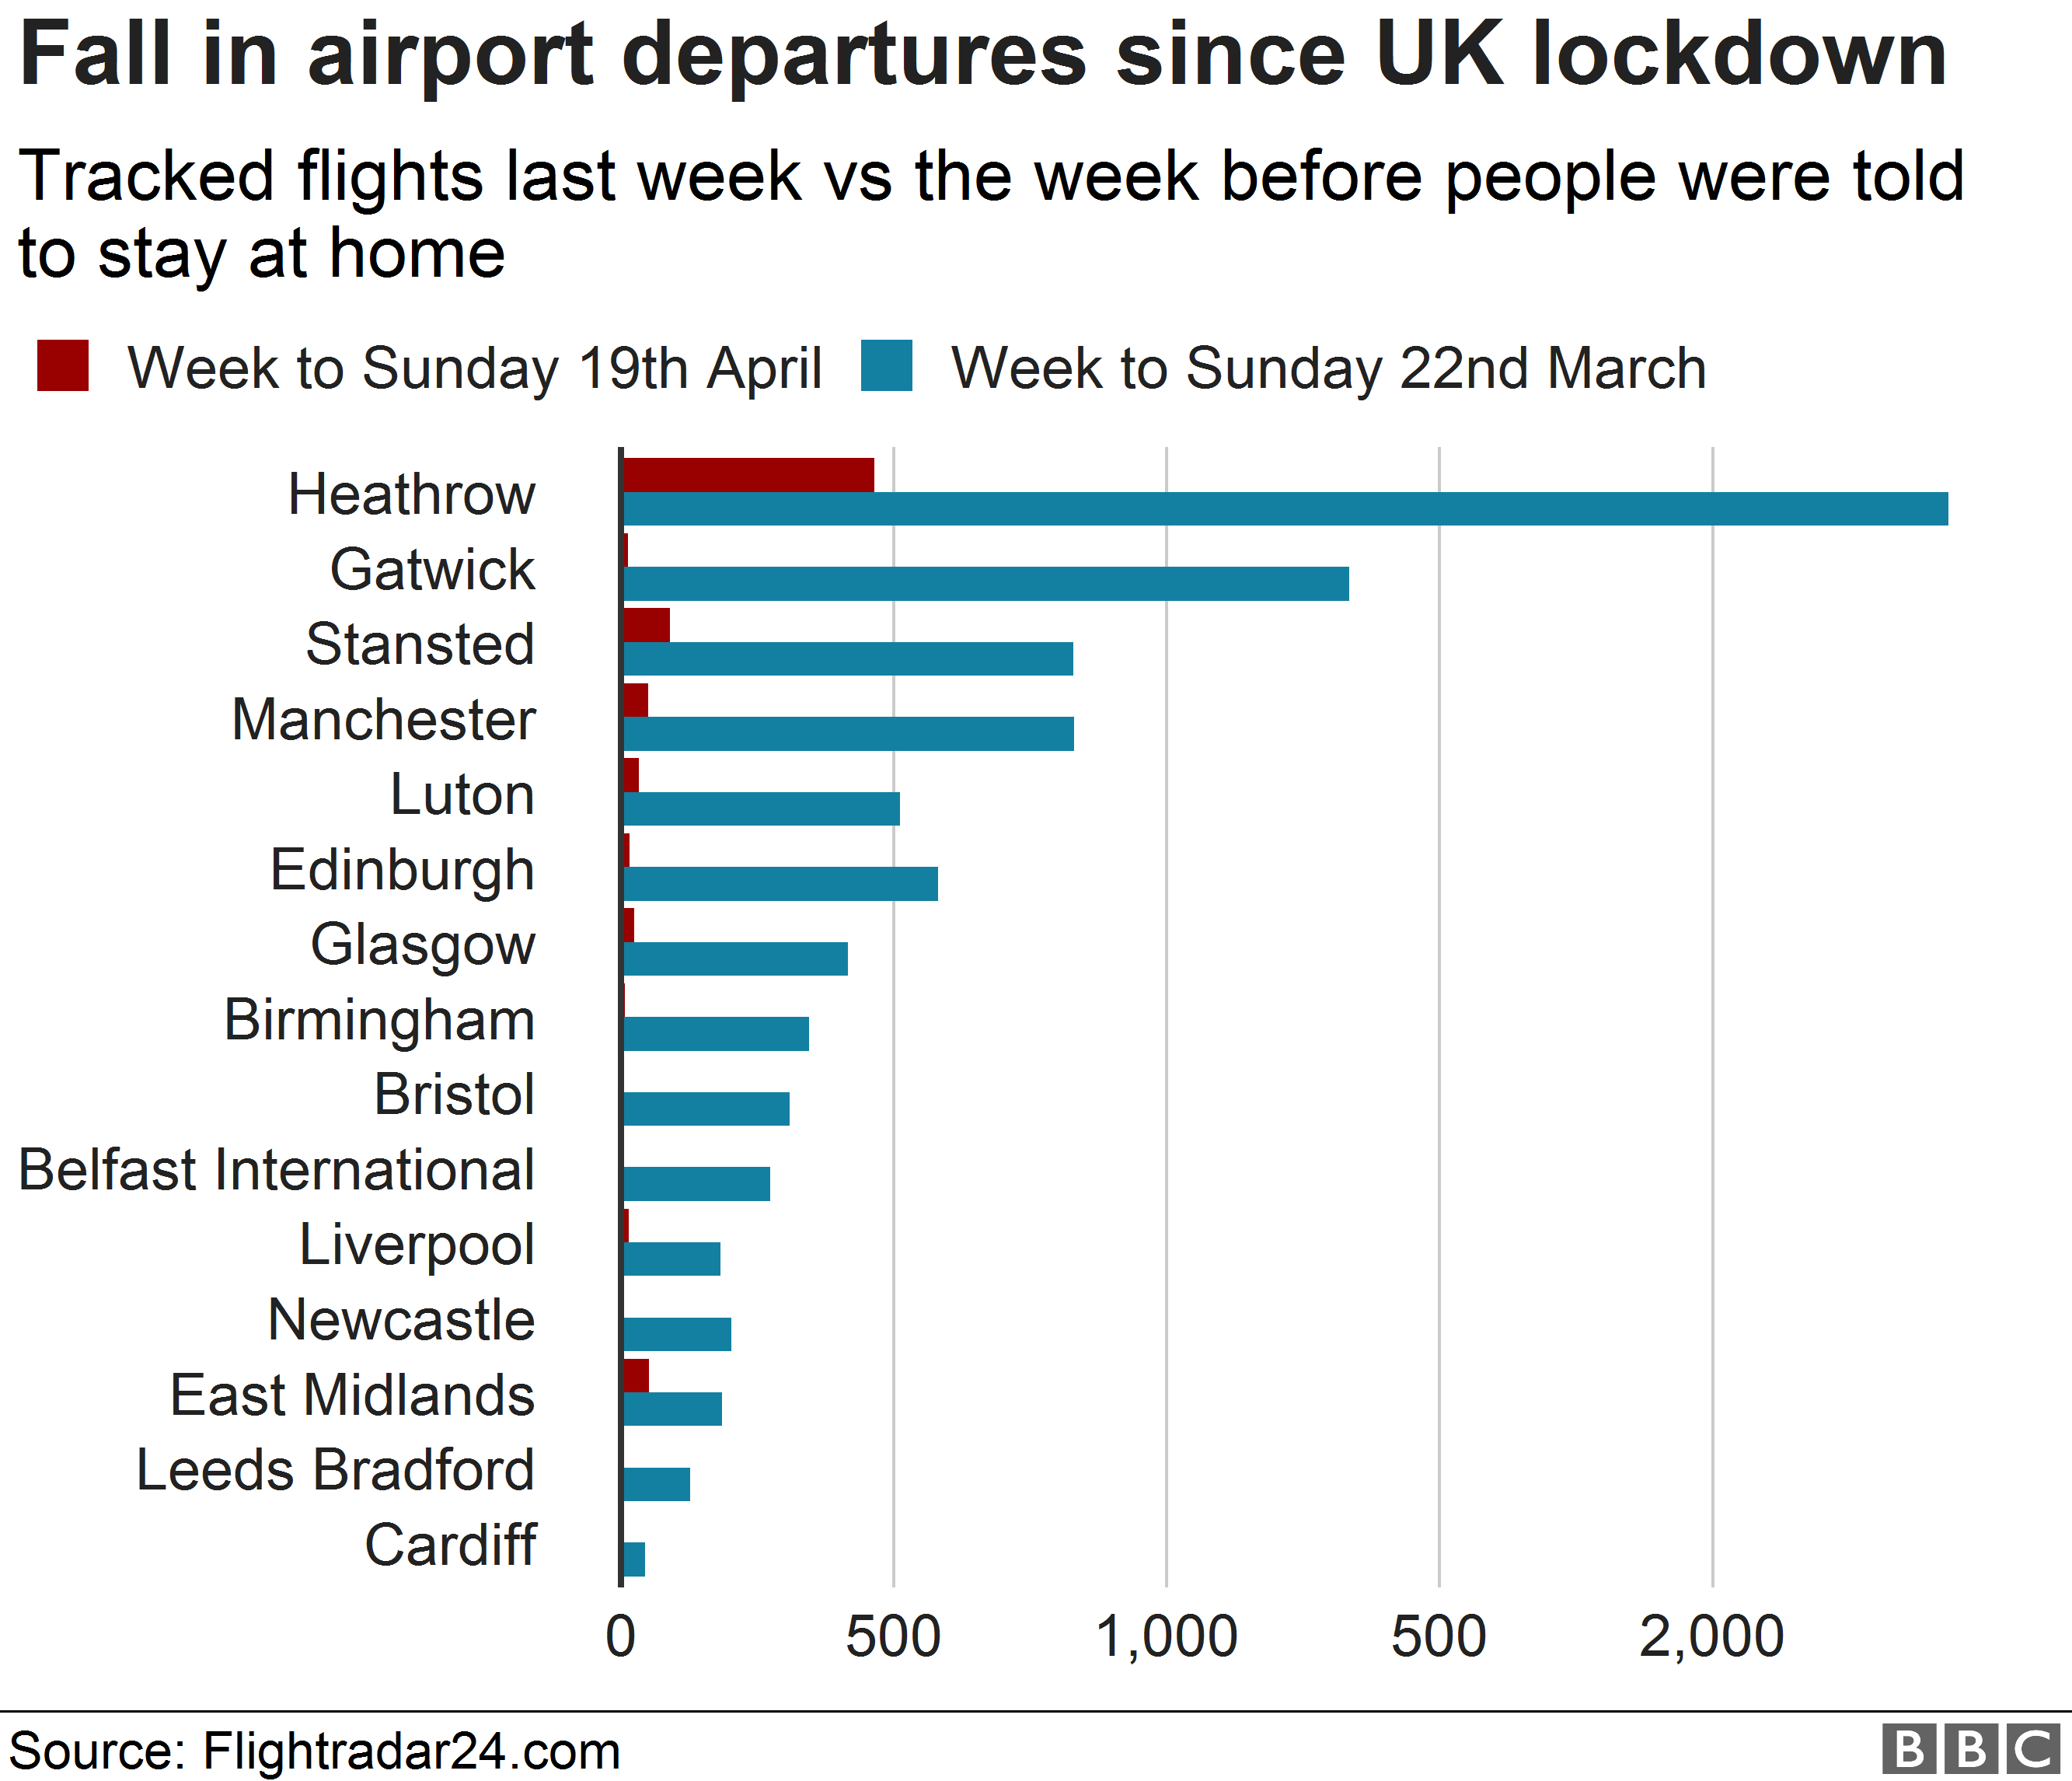 Chart showing changes in tracked flights at individual airports